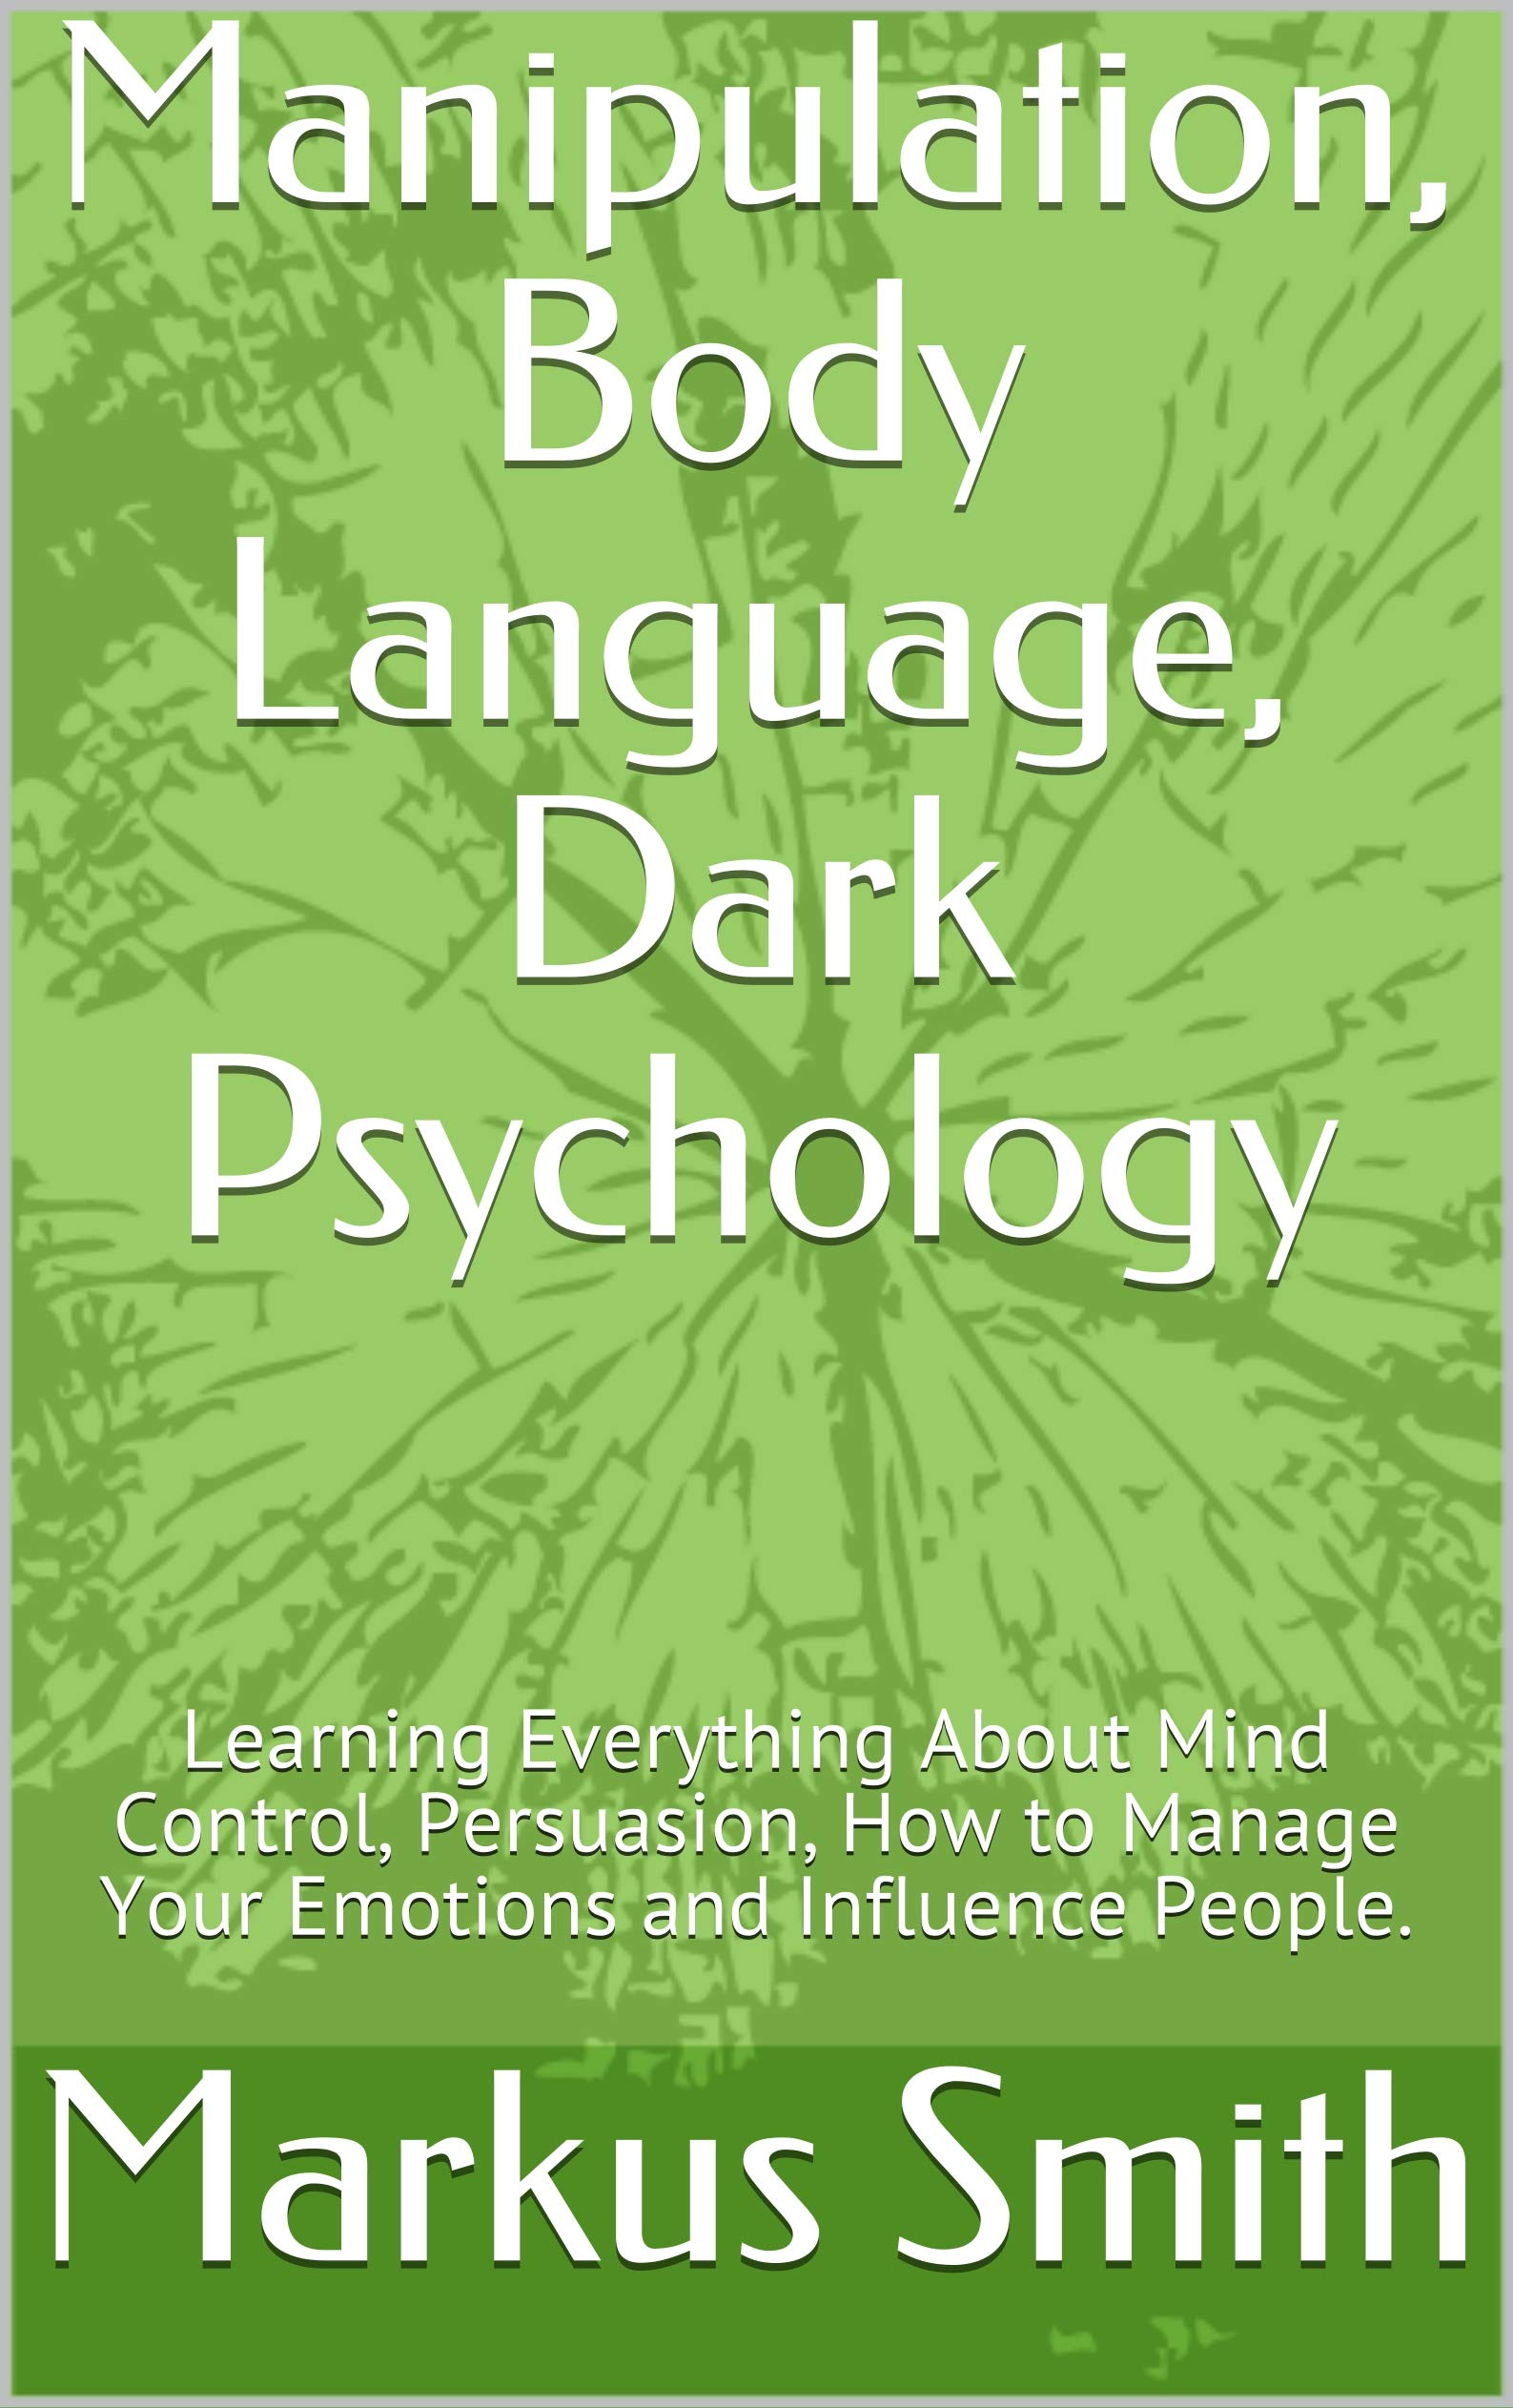 Manipulation, Body Language, Dark Psychology: Learning Everything About Mind Control, Persuasion, How to Manage Your Emotions and Influence People.